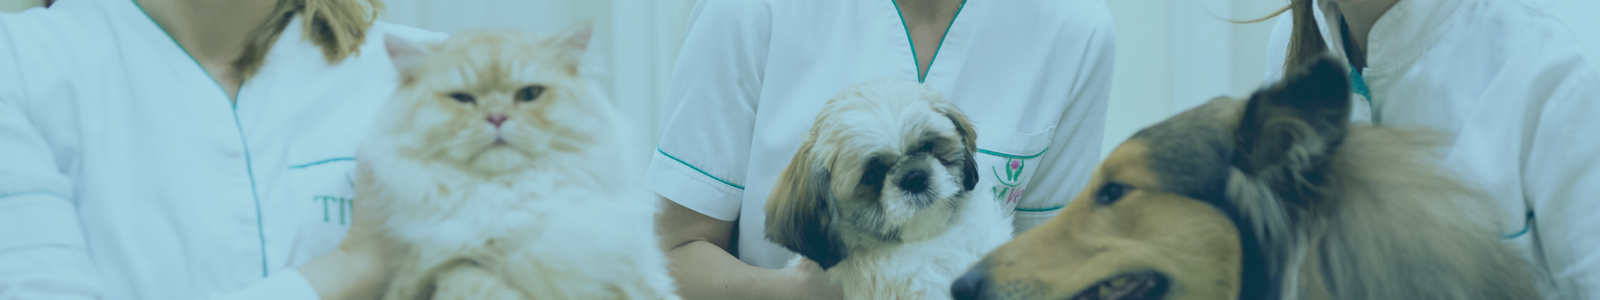 Cream cat, shih tzu, and collie with vet techs holding them